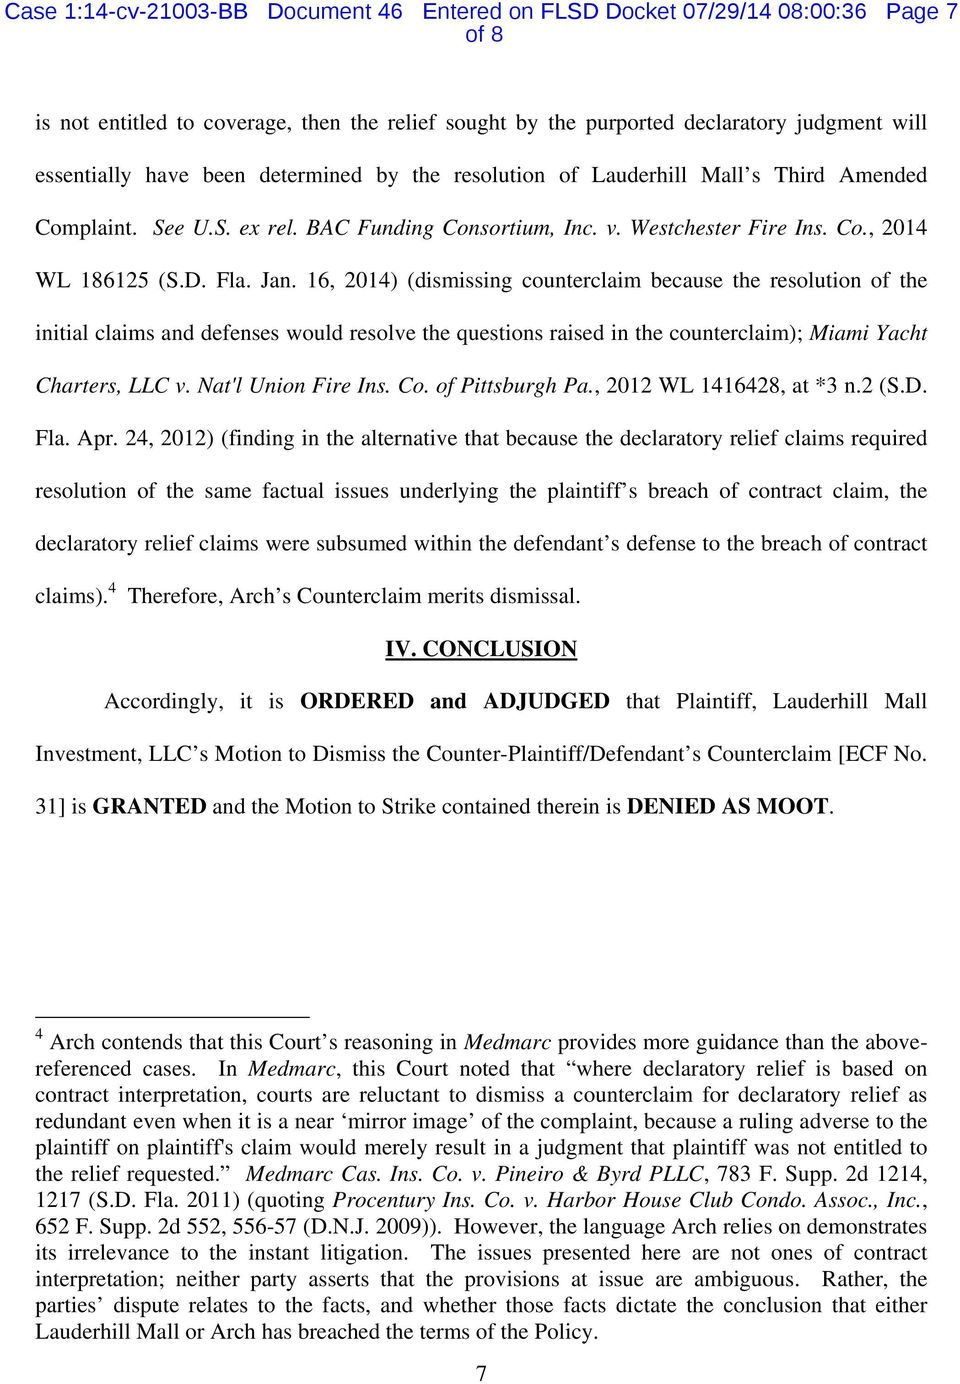 16, 2014) (dismissing counterclaim because the resolution of the initial claims and defenses would resolve the questions raised in the counterclaim); Miami Yacht Charters, LLC v. Nat'l Union Fire Ins.